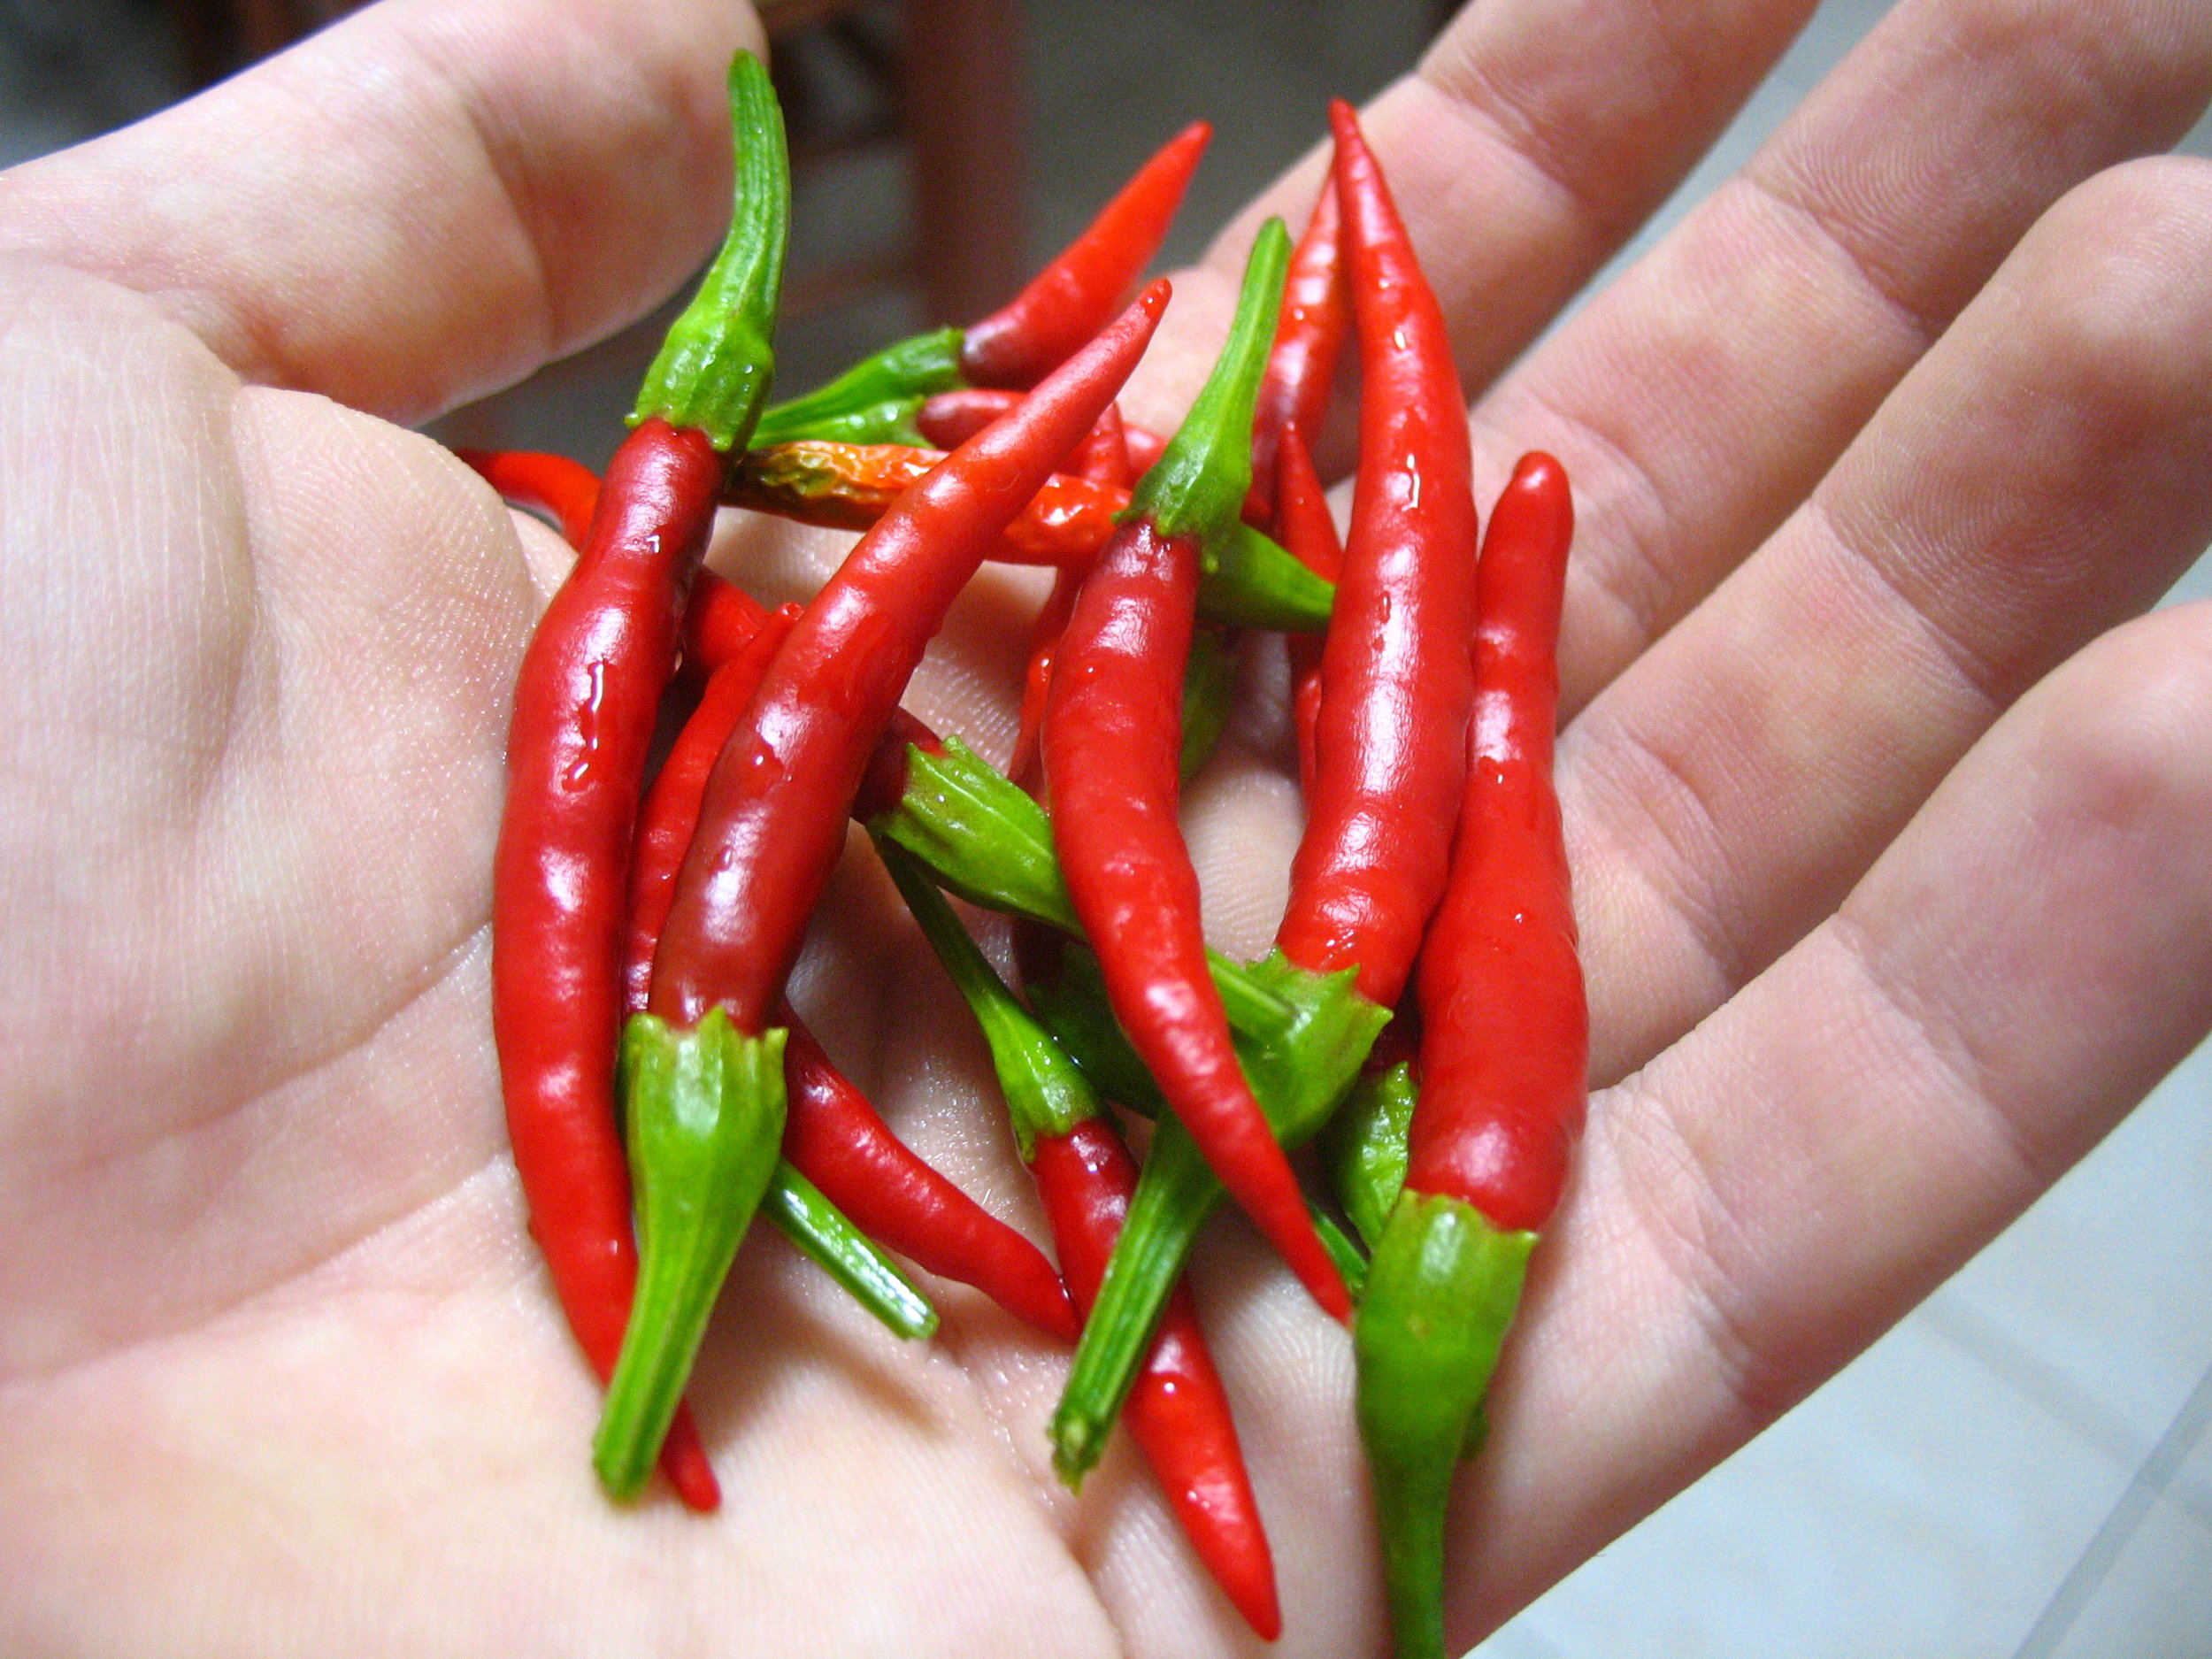 Mature_Chile_de_arbol_peppers.jpg